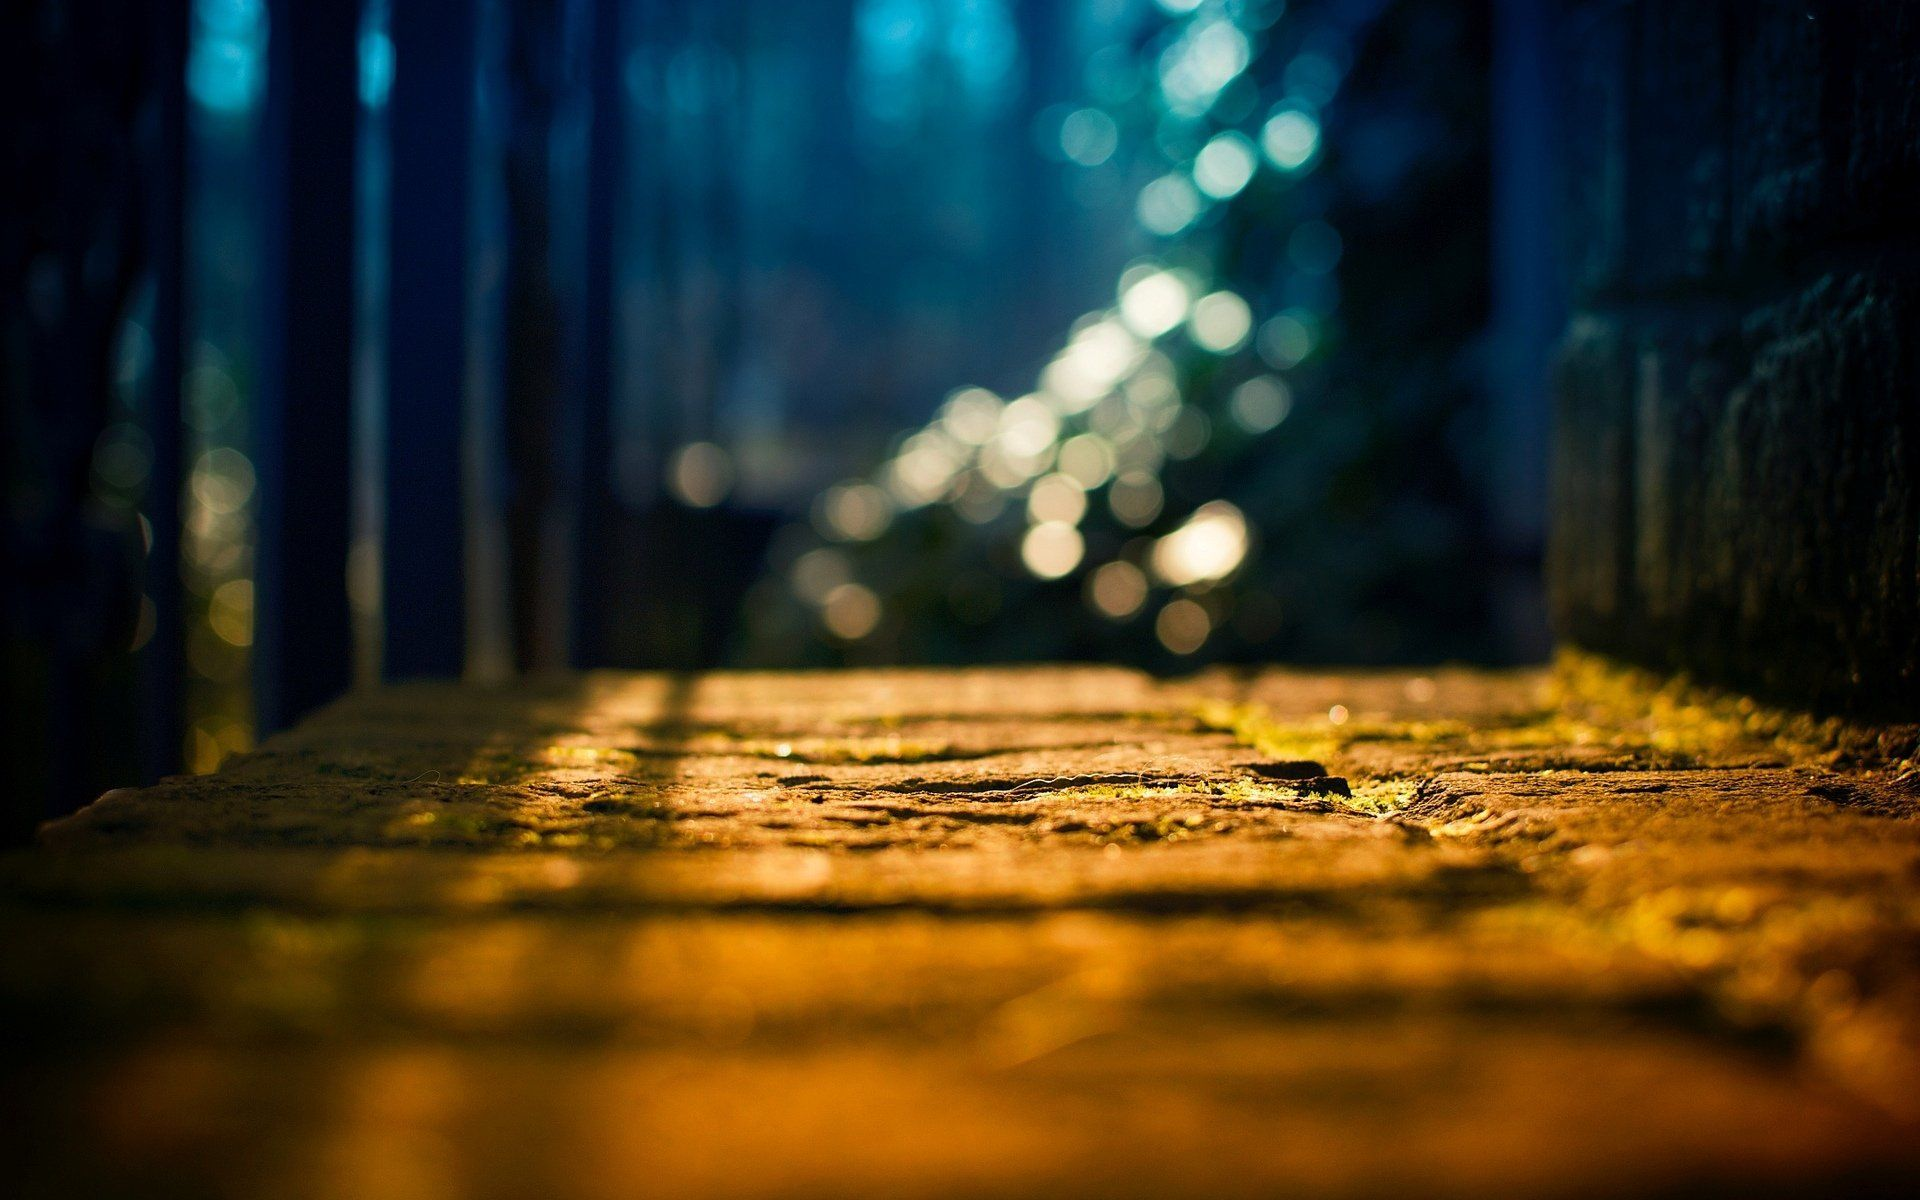 close up land light tree sun blur bokeh background wallpaper 1920x1200